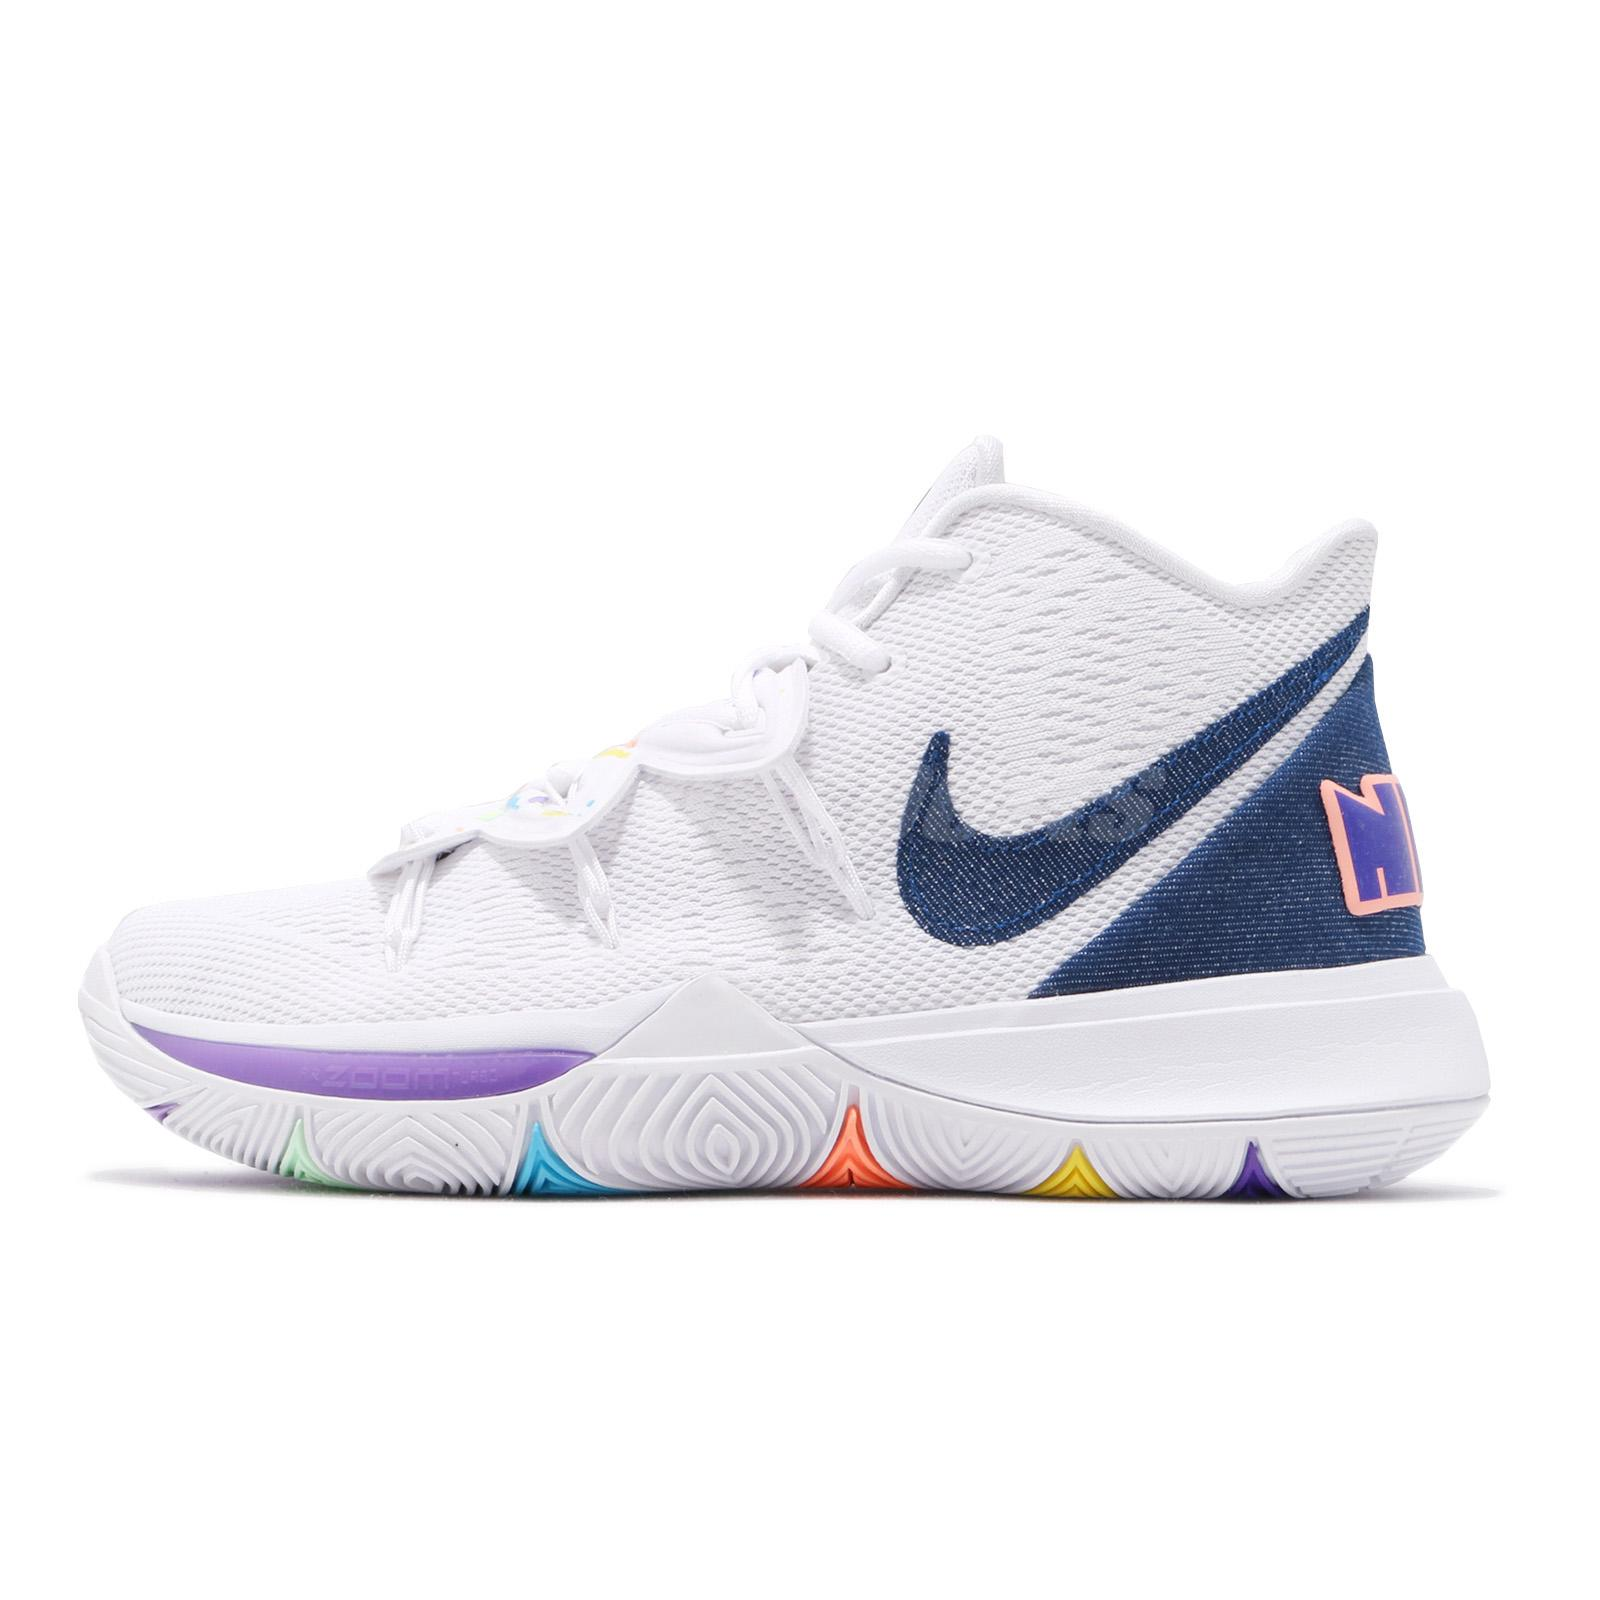 brand new 1d9cf 4d3bf Nike Kyrie 5 EP V Irving Have A Nike Day Men White Royal Blue Shoes  AO2919-101